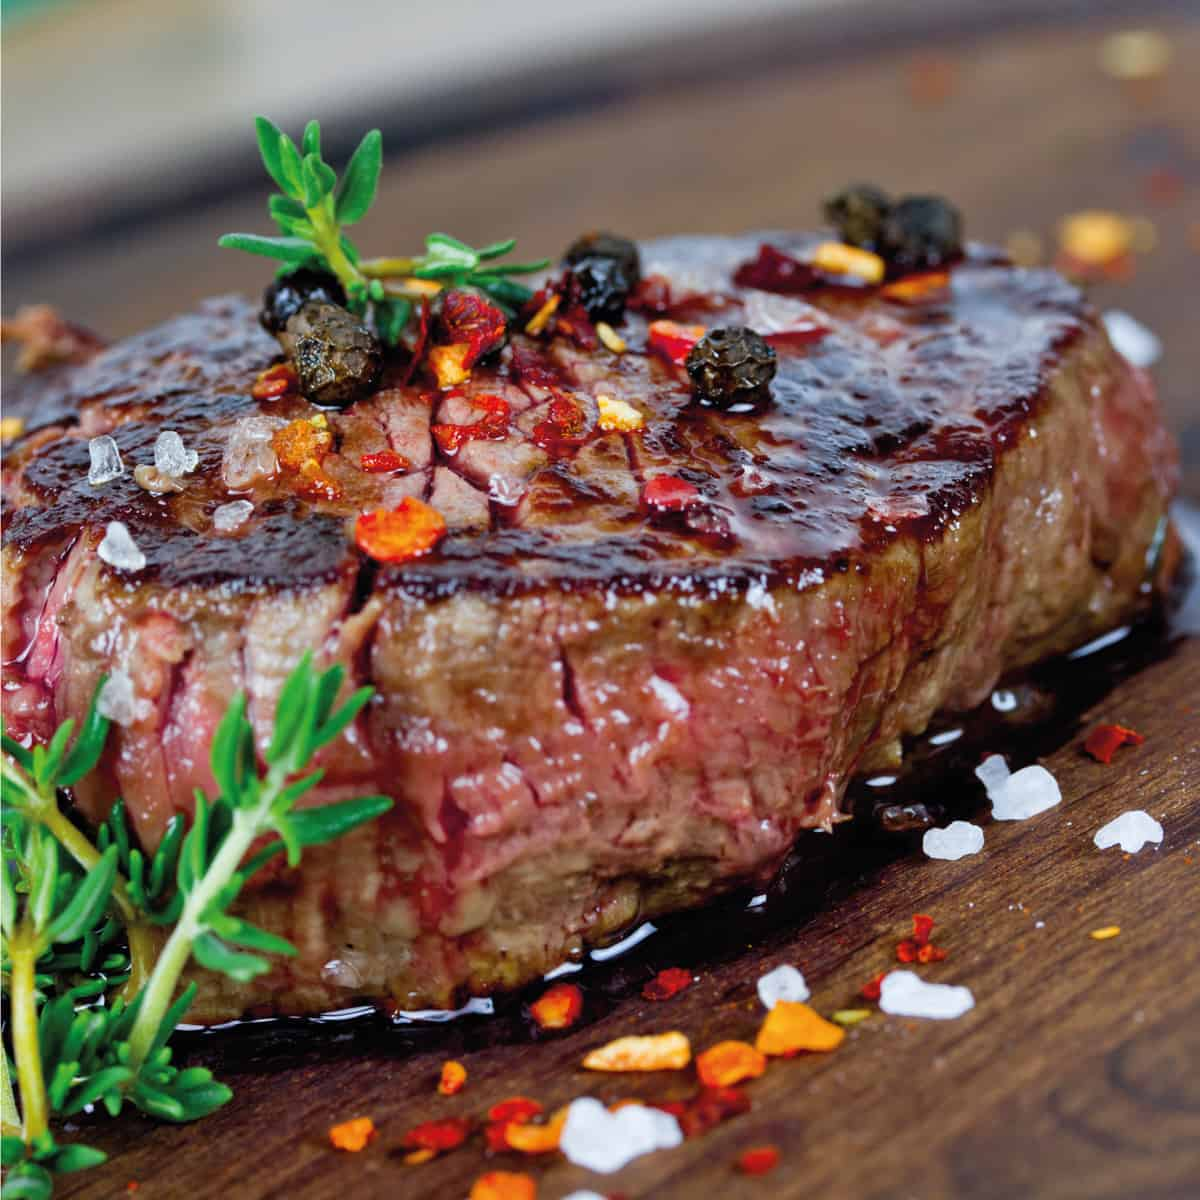 Seared meat for steak topped with herbs and spices